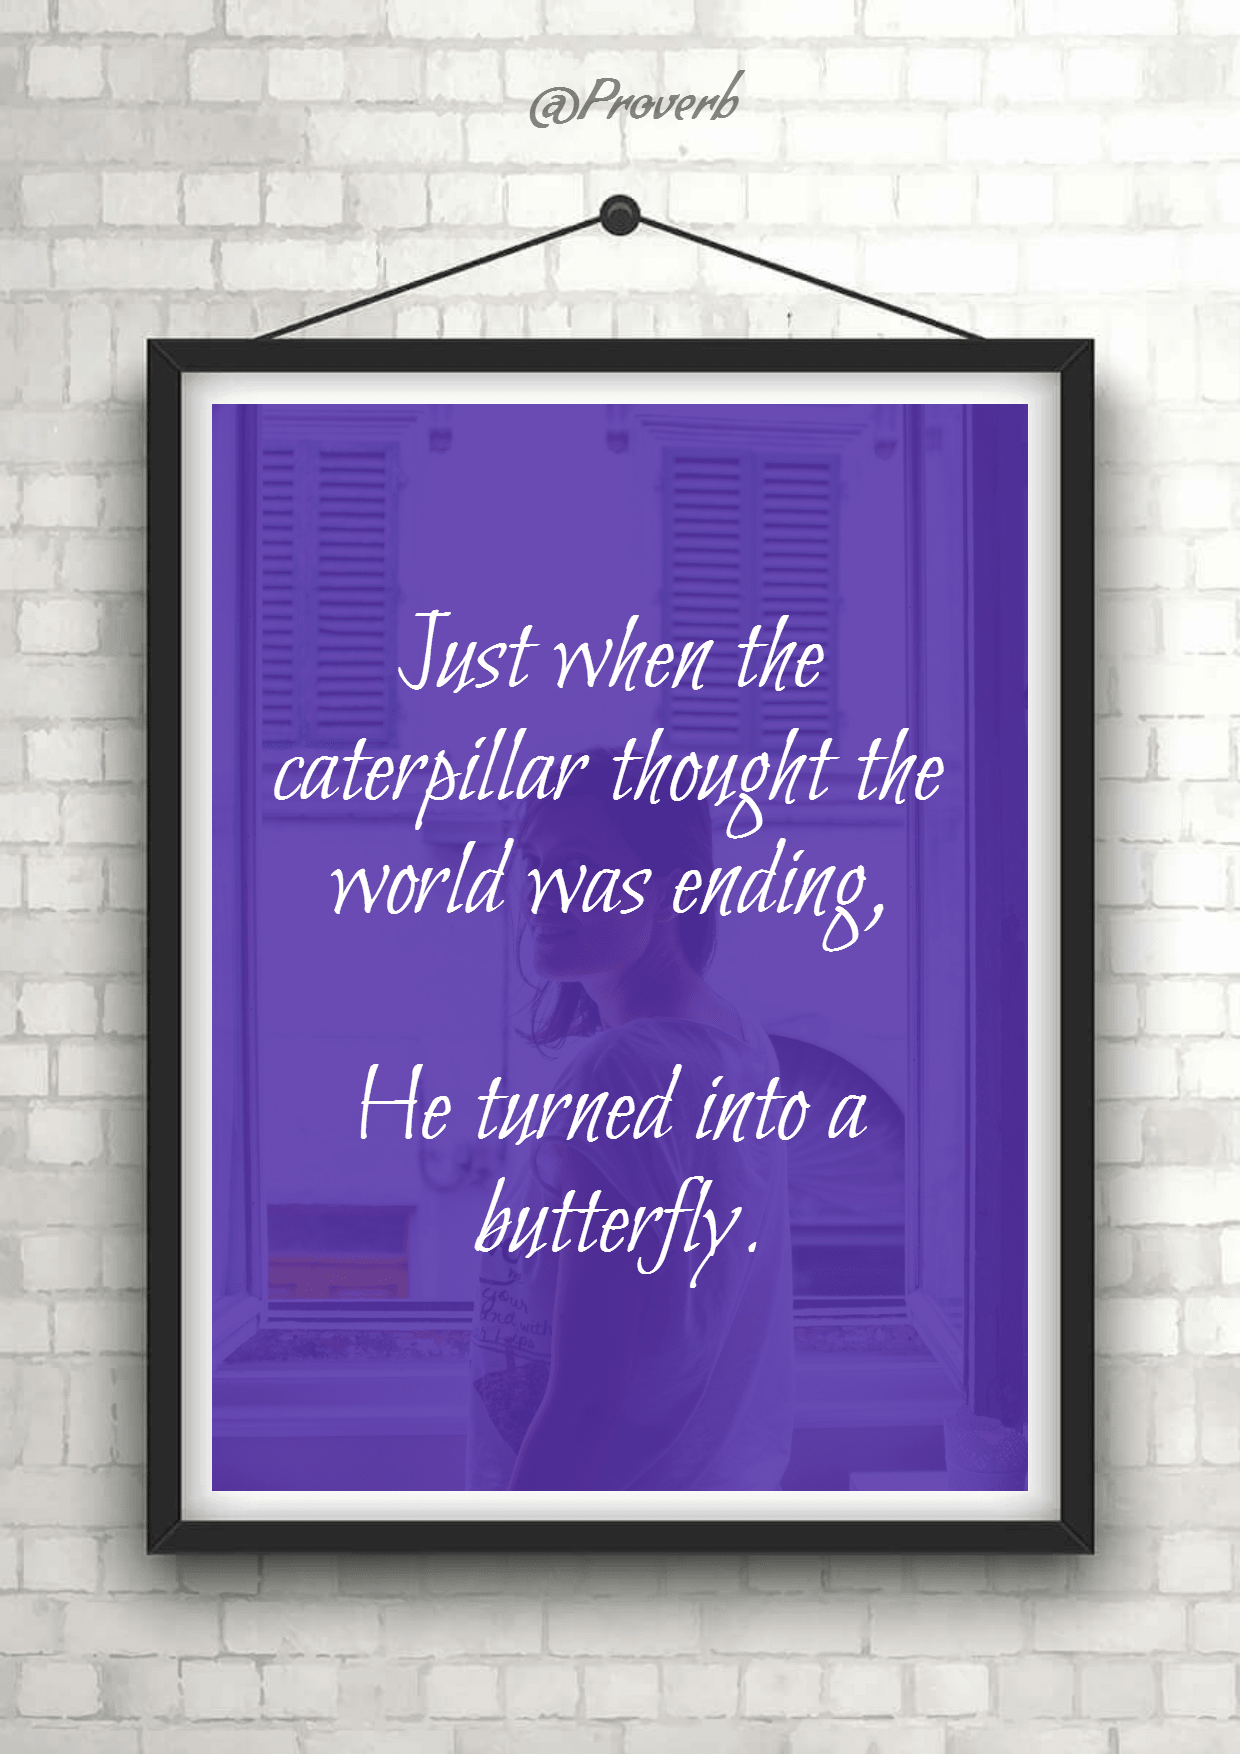 Purple,                Text,                Violet,                Font,                Picture,                Frame,                Brand,                Poster,                Quote,                Mockup,                Inspiration,                Life,                Photo,                 Free Image